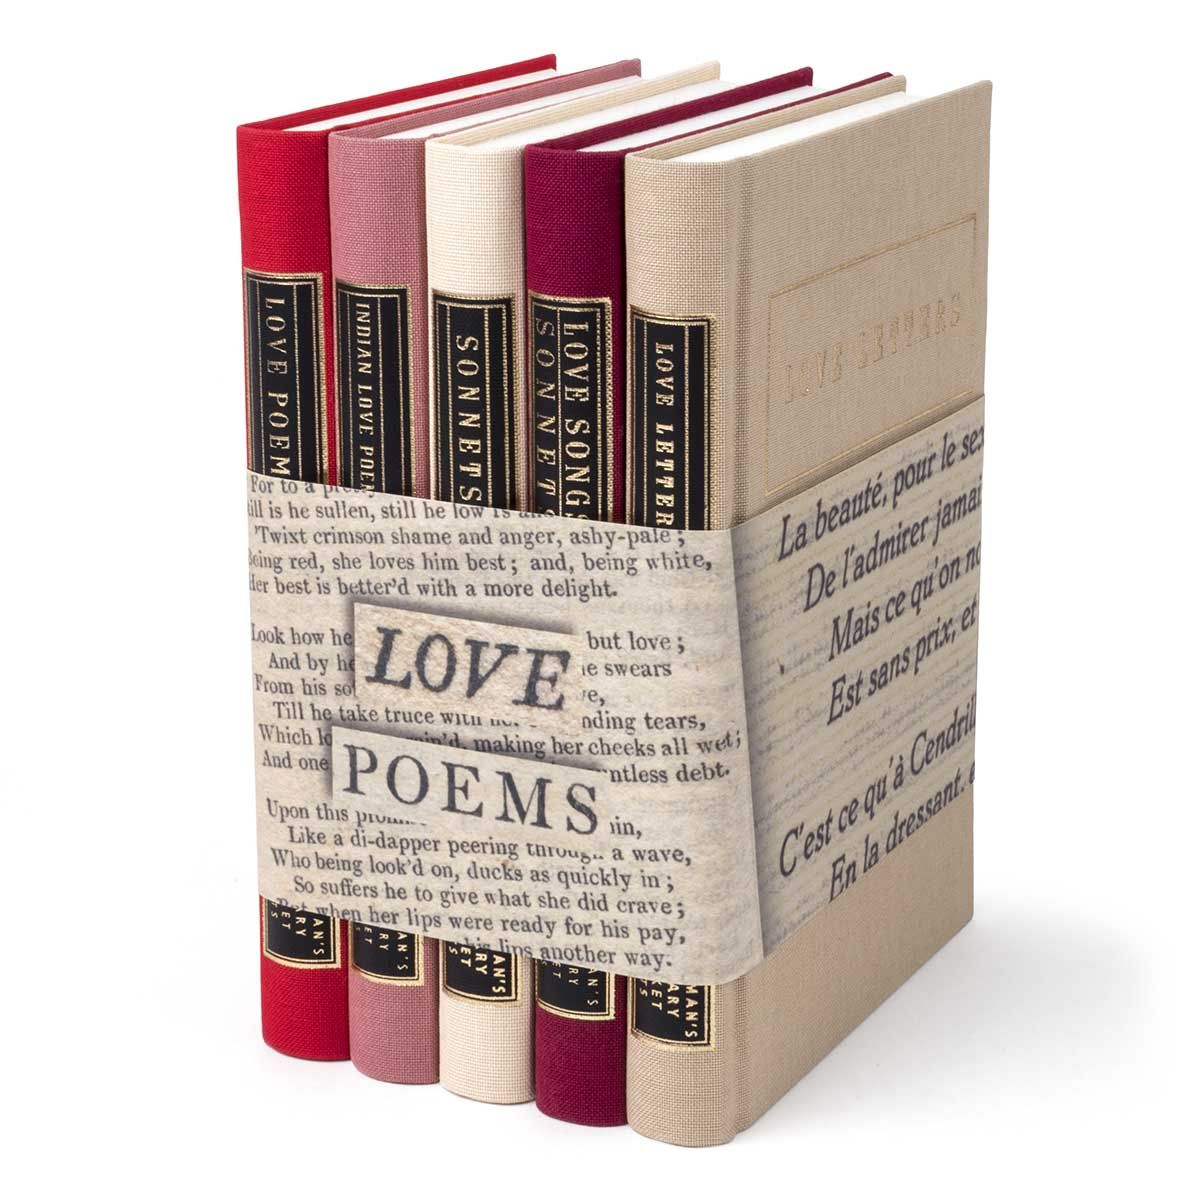 Love Poems Book Band Set With Images Love Poems Great Love